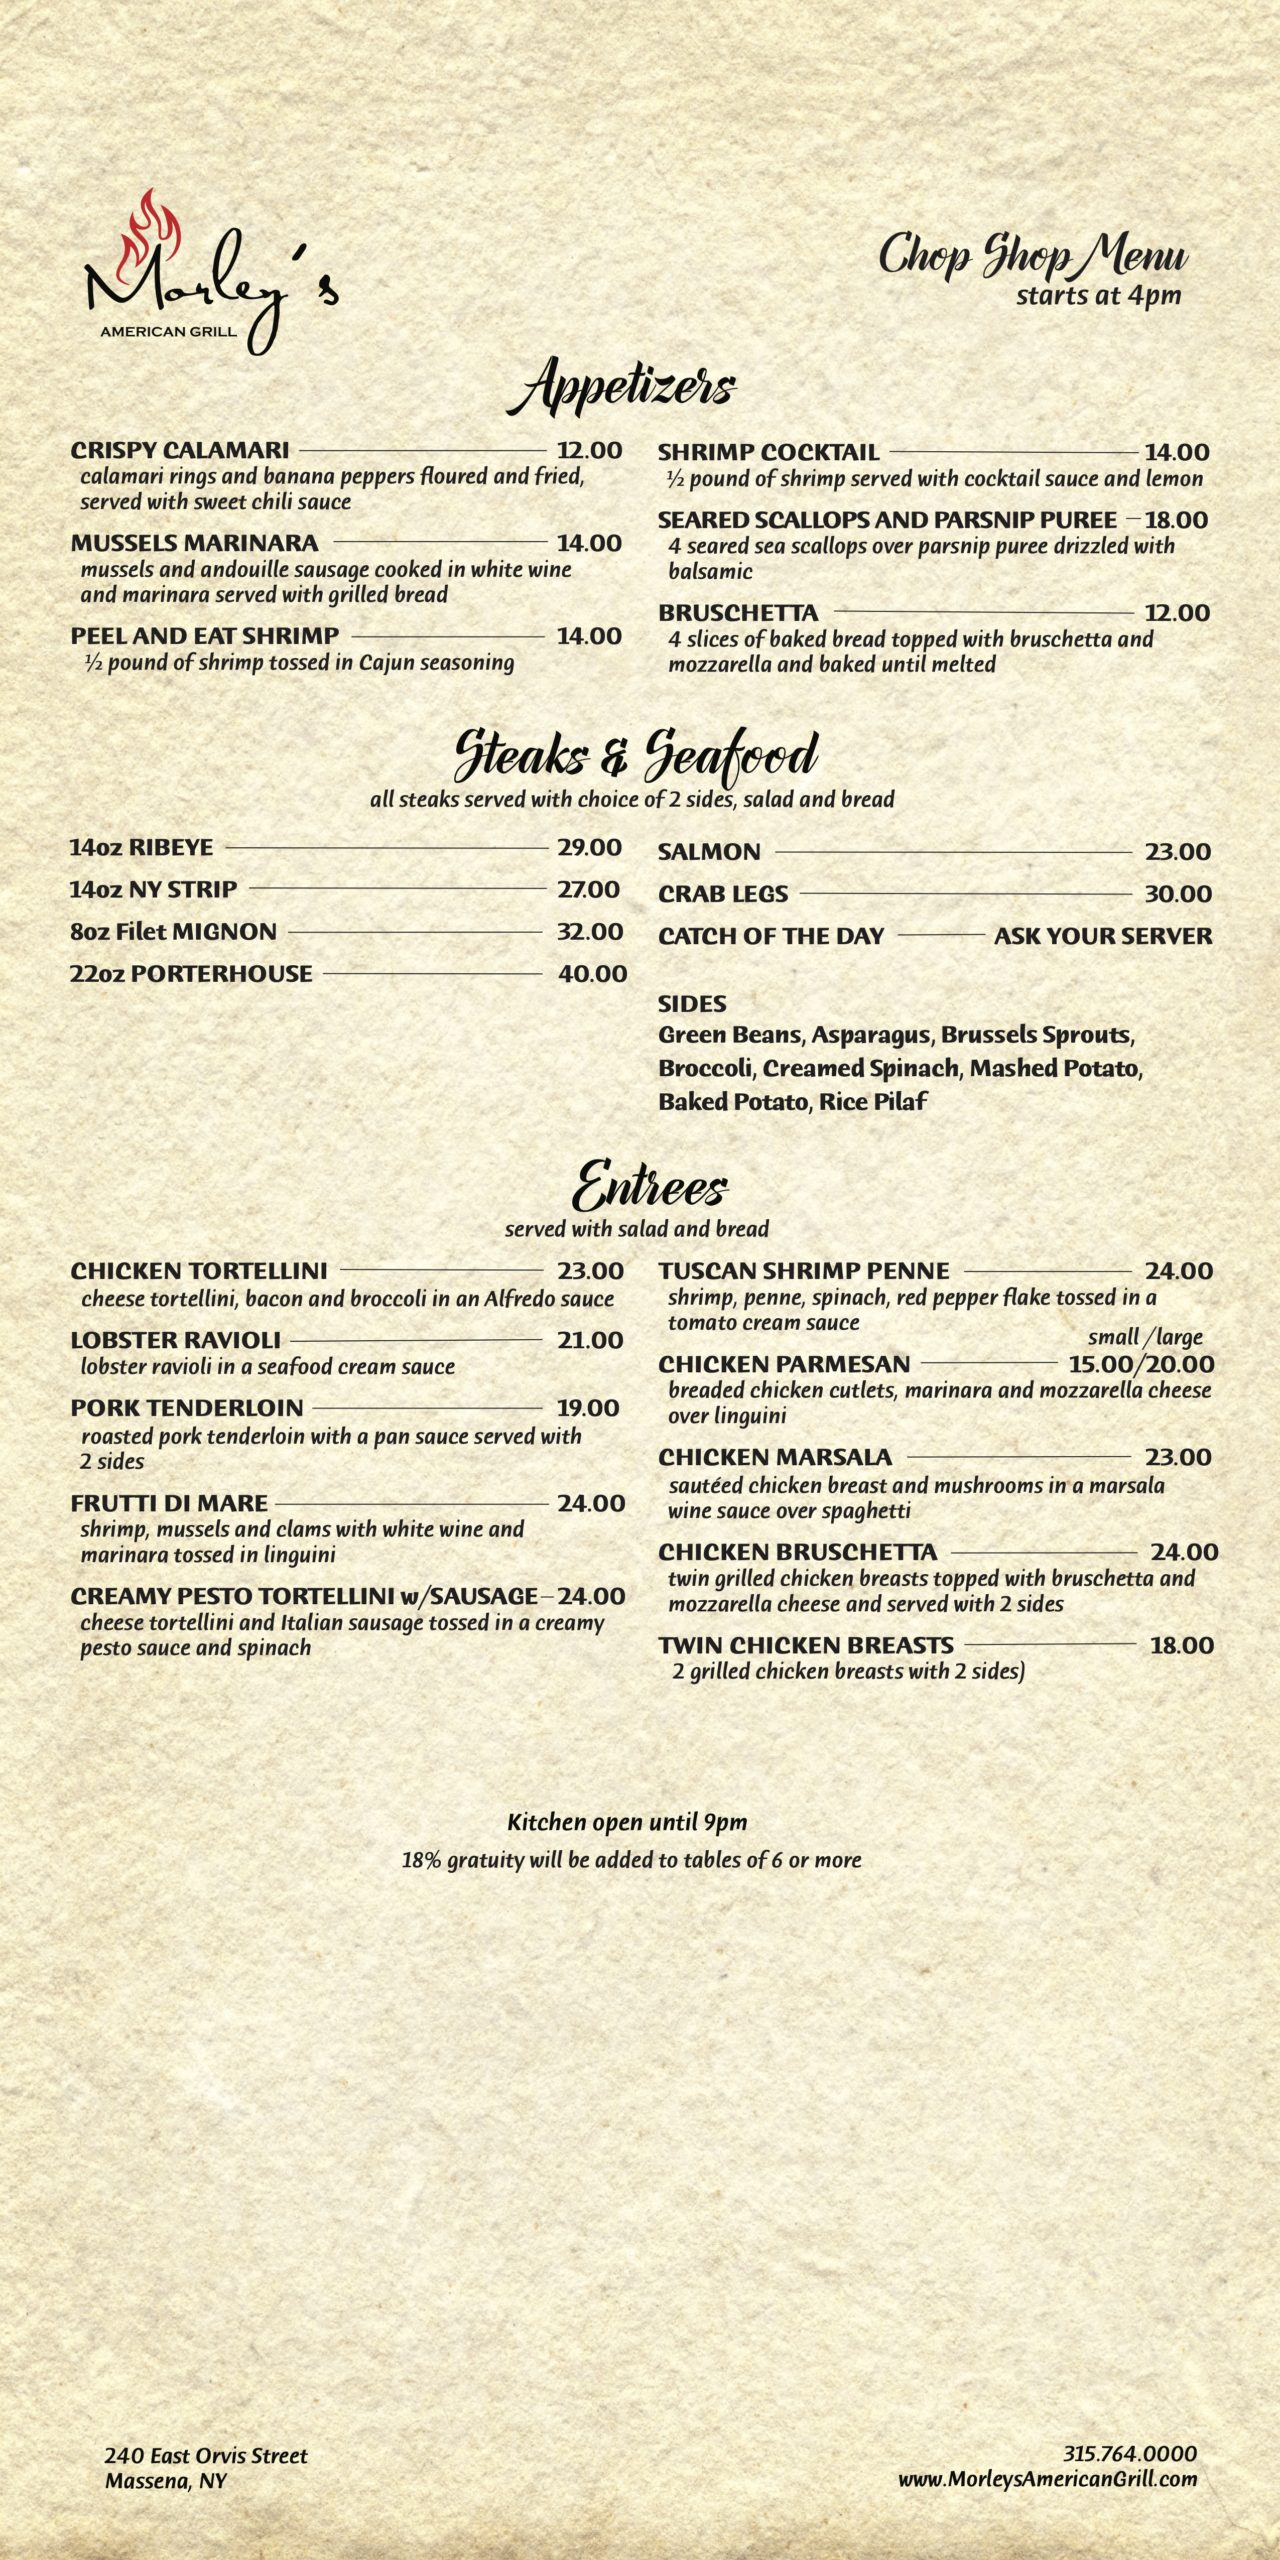 morleys chop menu 10_5_20